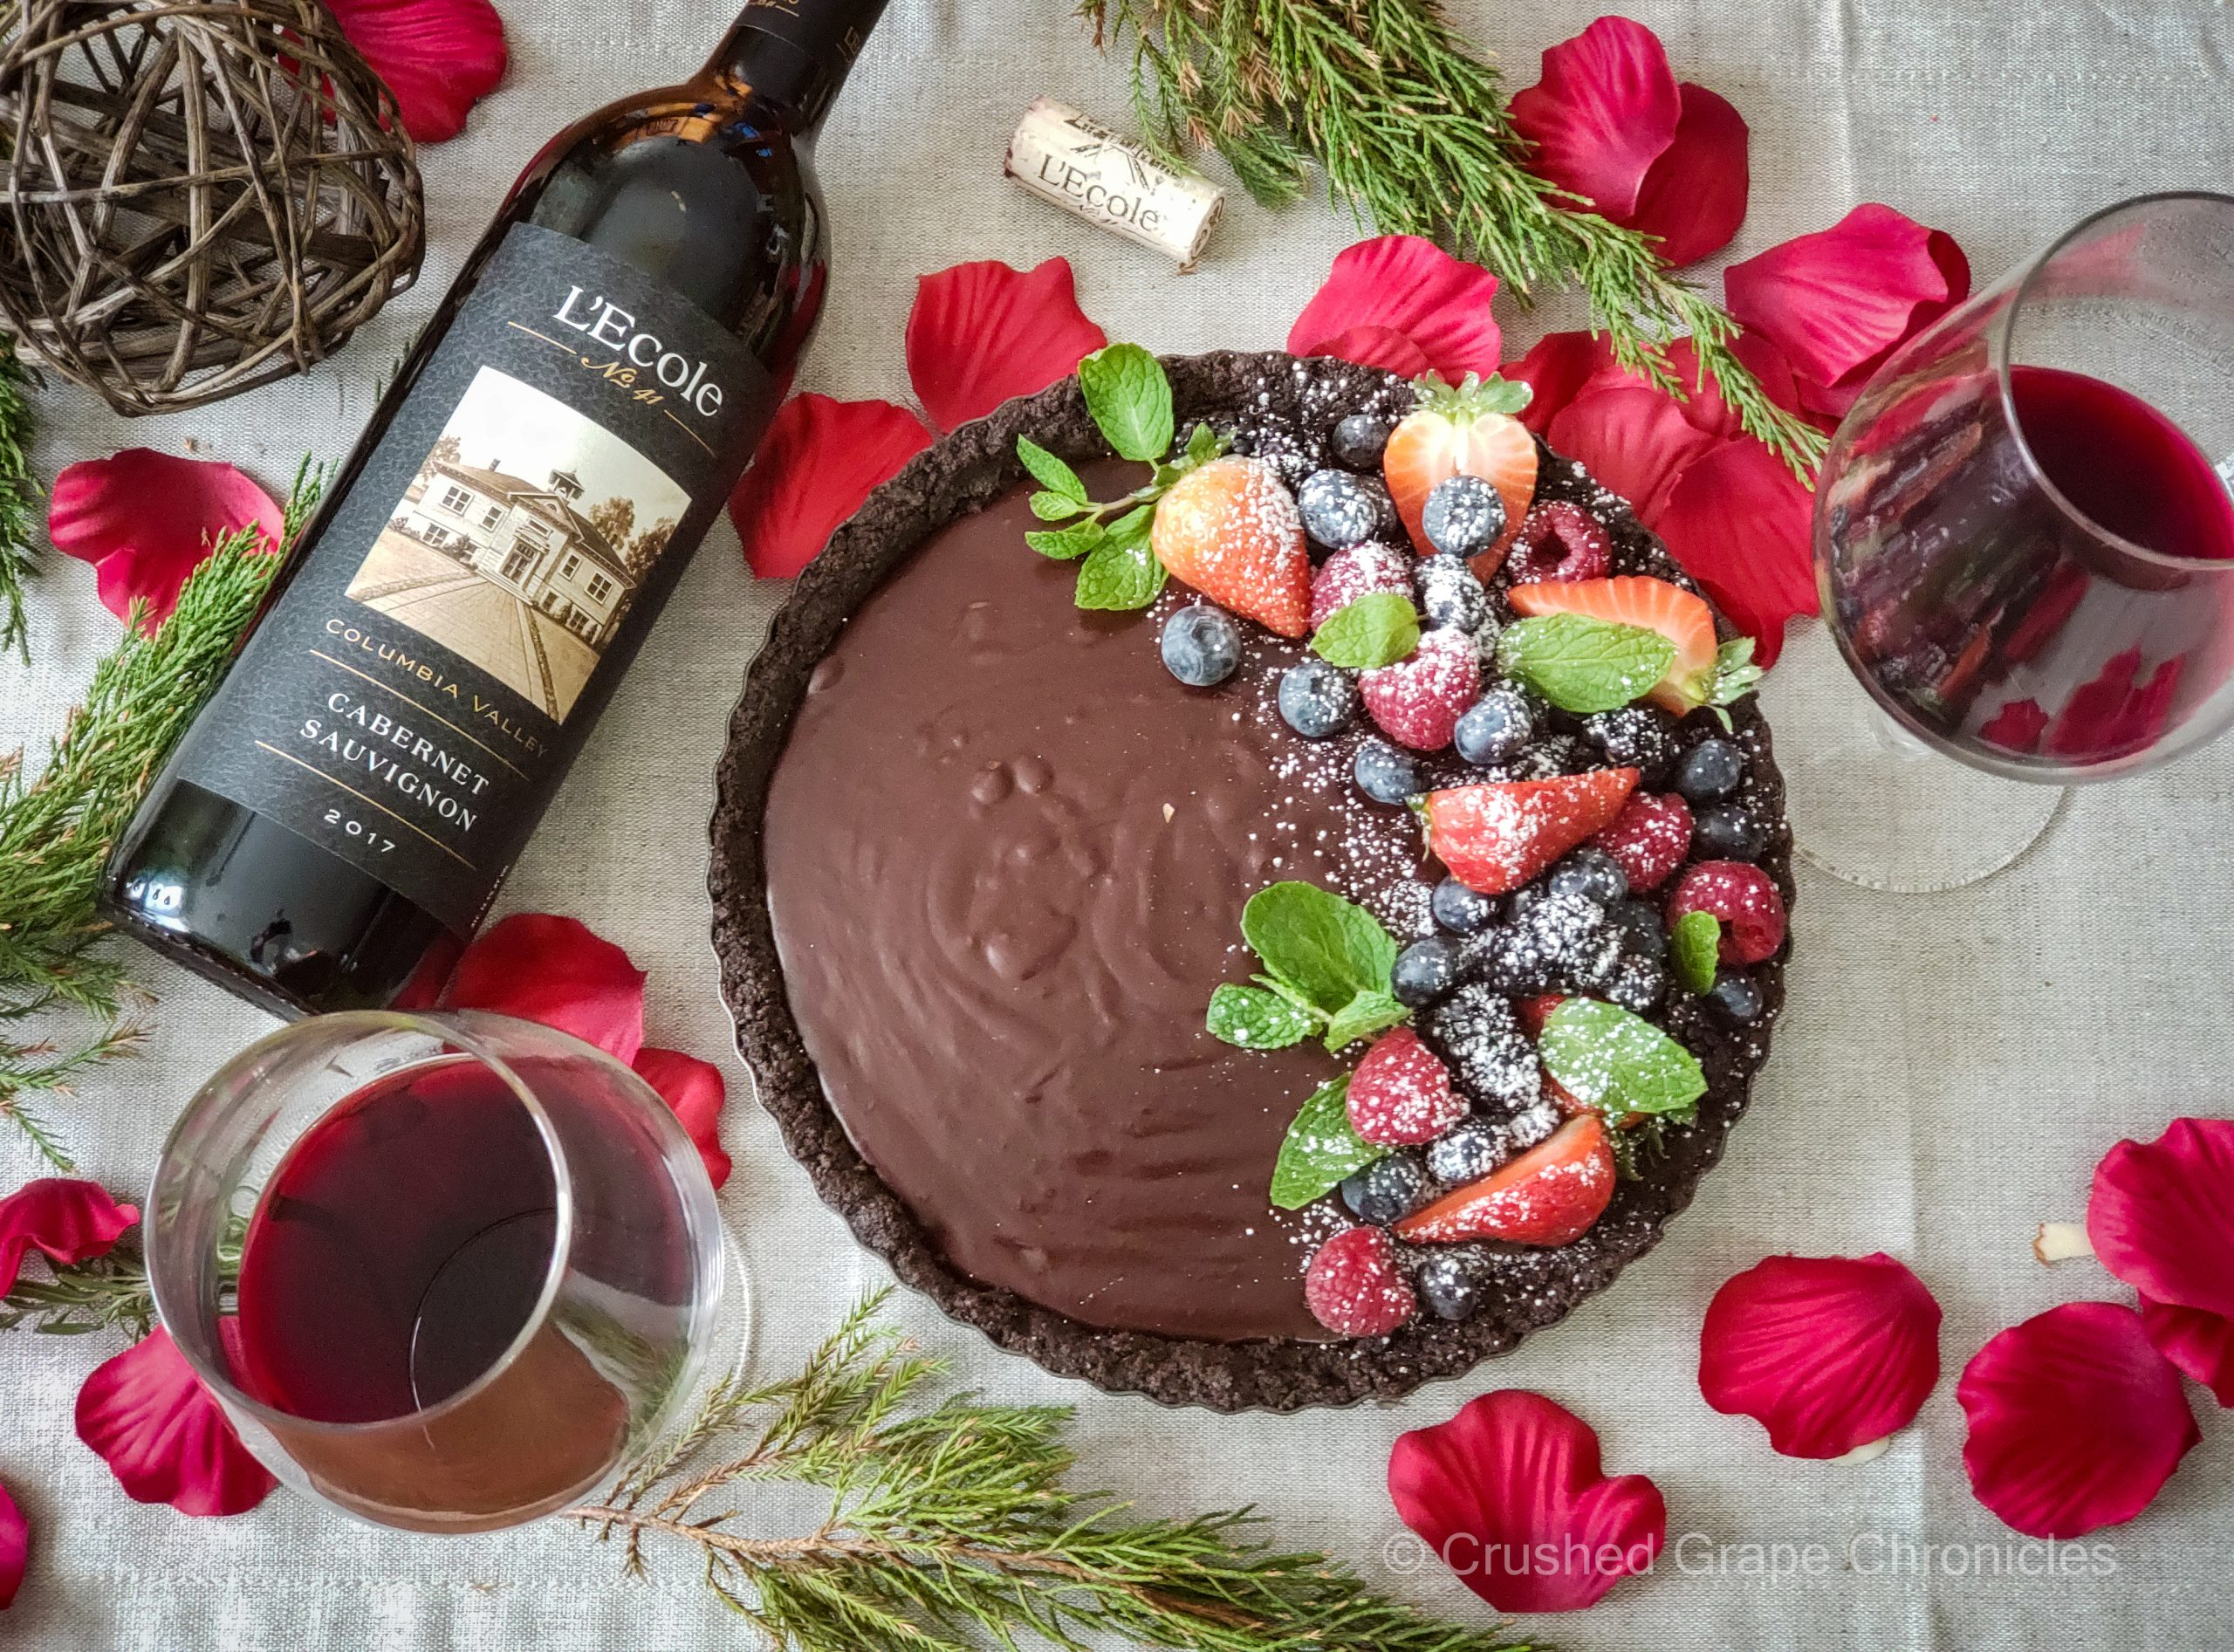 Chocolate Tart with Forest Berries and L'Ecole Cabernet